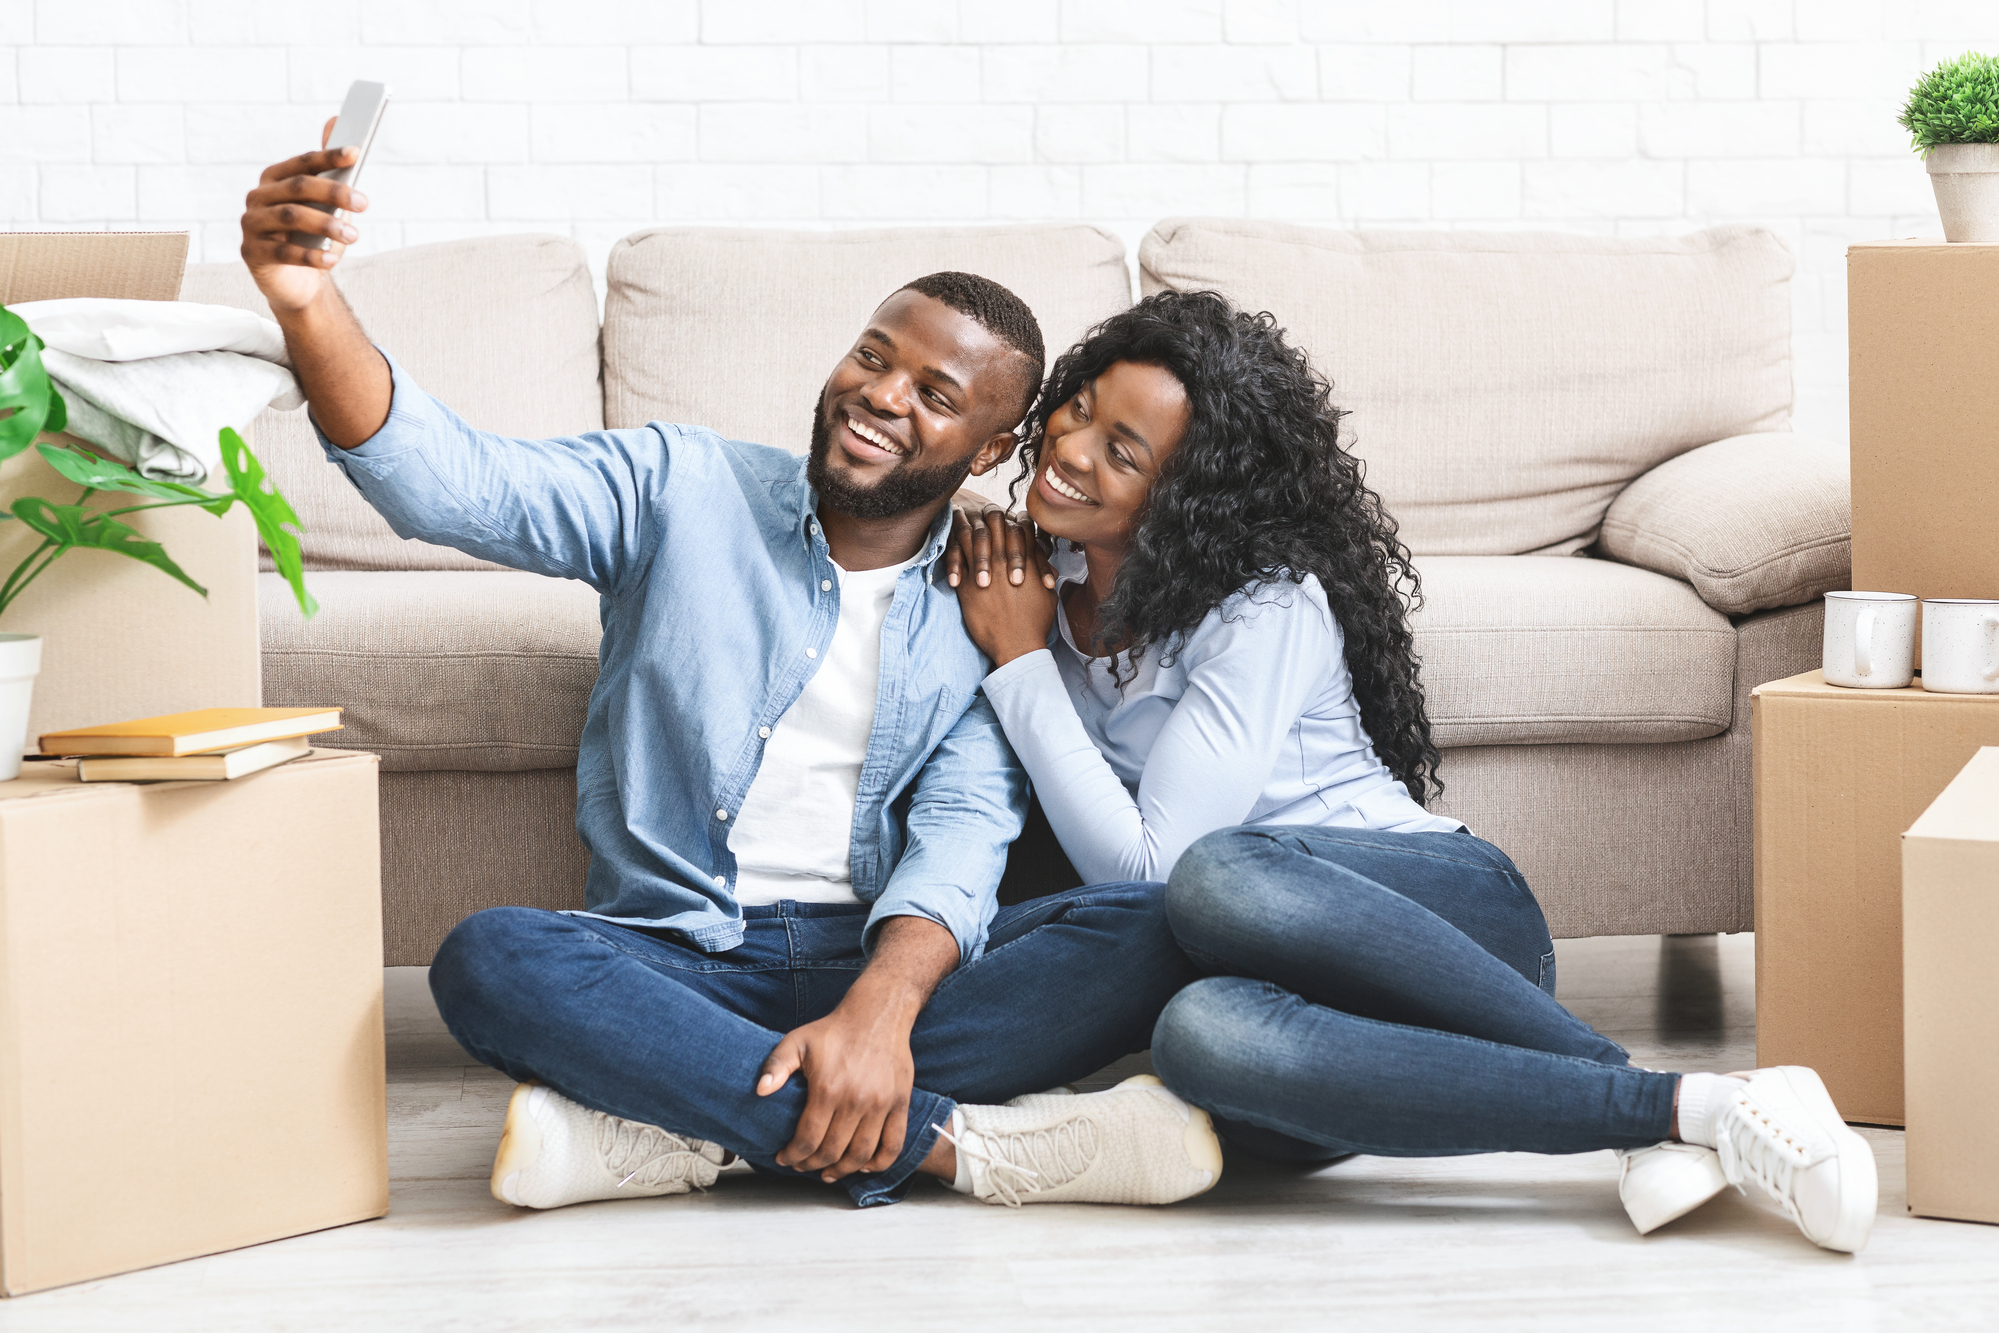 Happy couple moving in new apartment, taking selfie on phone